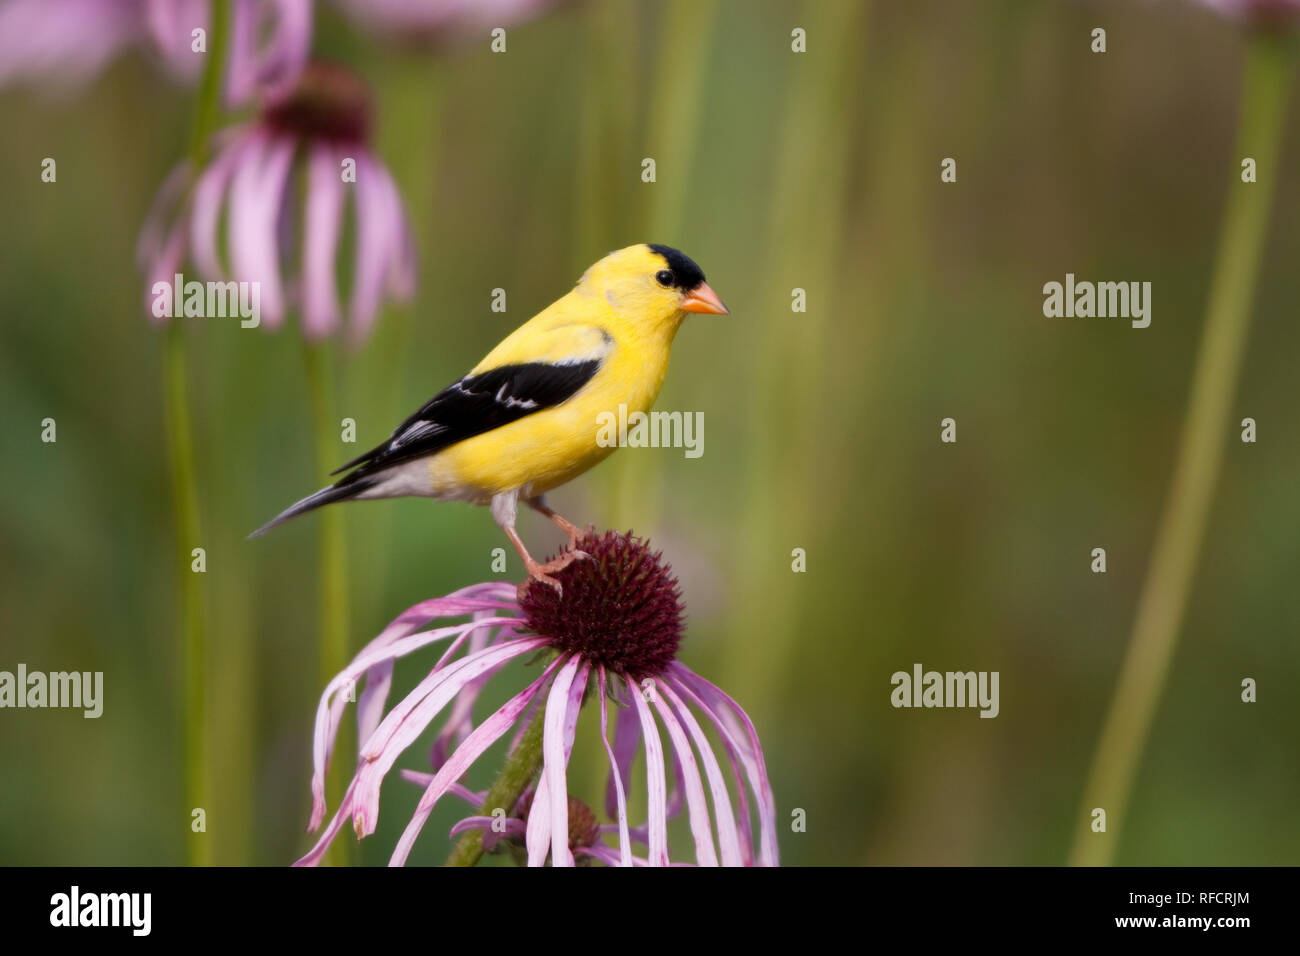 01640-16004 American Goldfinch (Carduelis tristis) male on Pale Purple Coneflower (Echinacea pallida)  in garden, Marion Co., IL - Stock Image